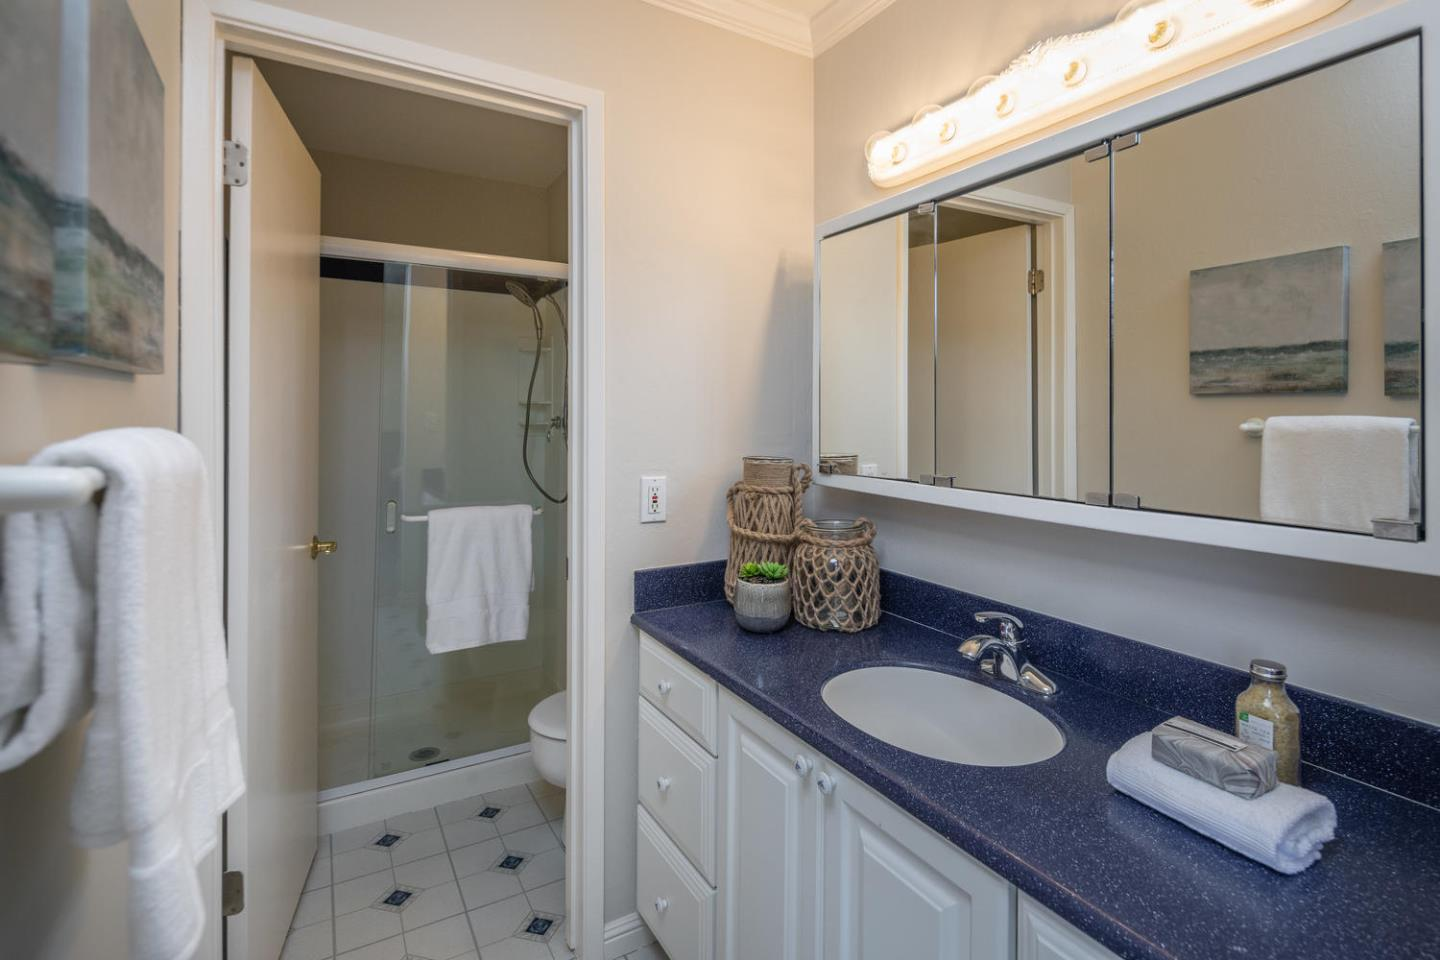 823 Peary Lane Foster City, CA 94404 - MLS #: ML81716650